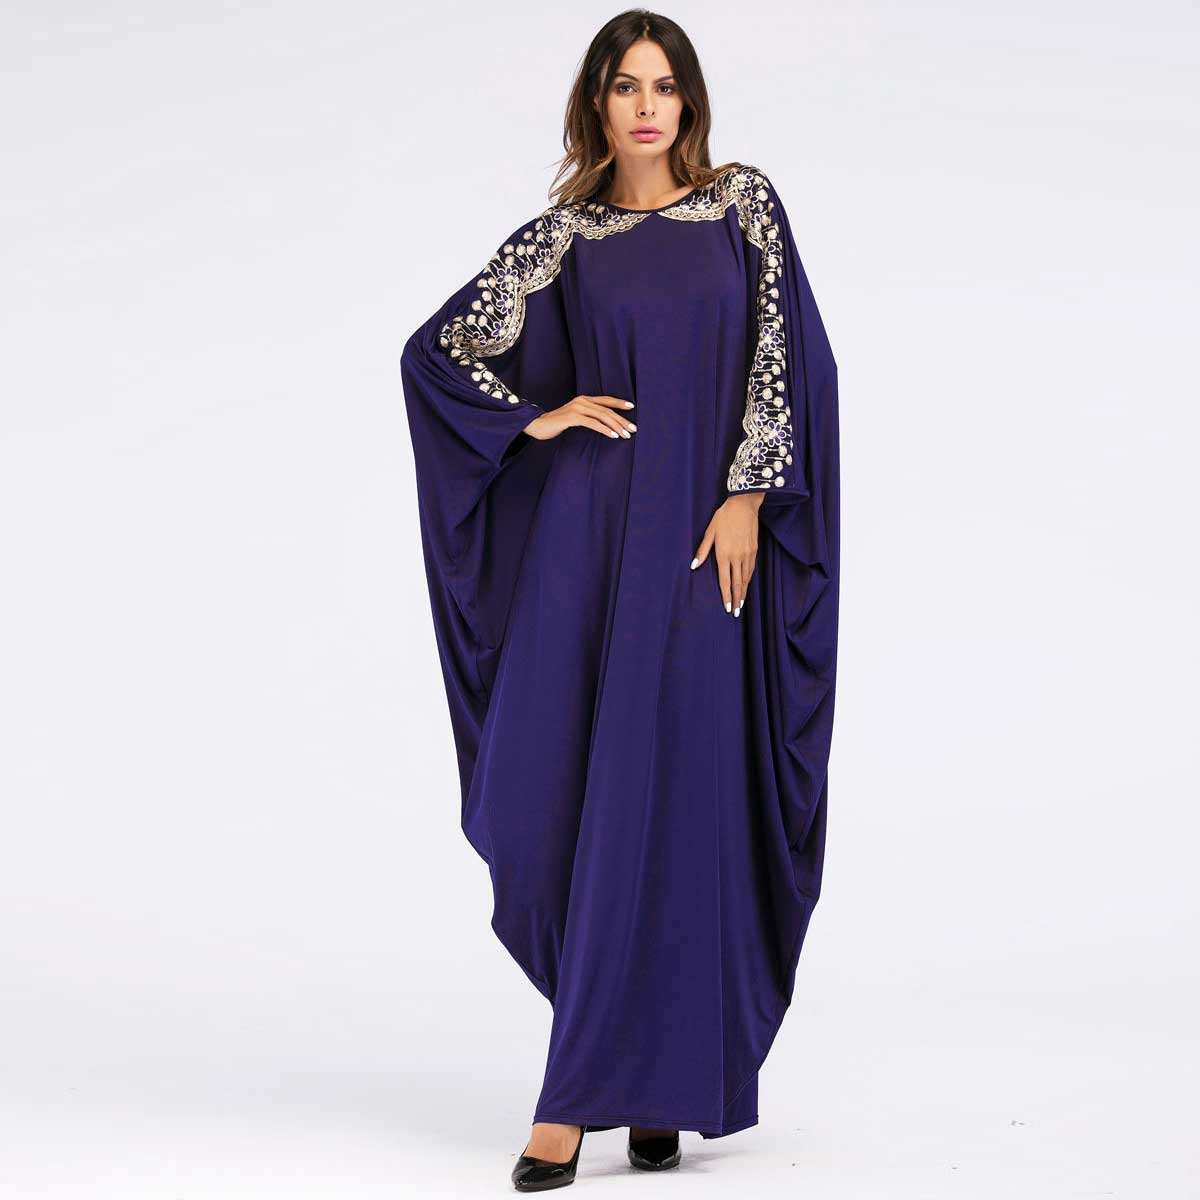 2019 Women Muslim Abaya Dubai New Style Sequined Batwing Sleeve Long Dress UAE Kaftan Islamic Arabic Thobe VKDR1439-in Islamic Clothing from Novelty & Special Use on Aliexpress.com | Alibaba Group